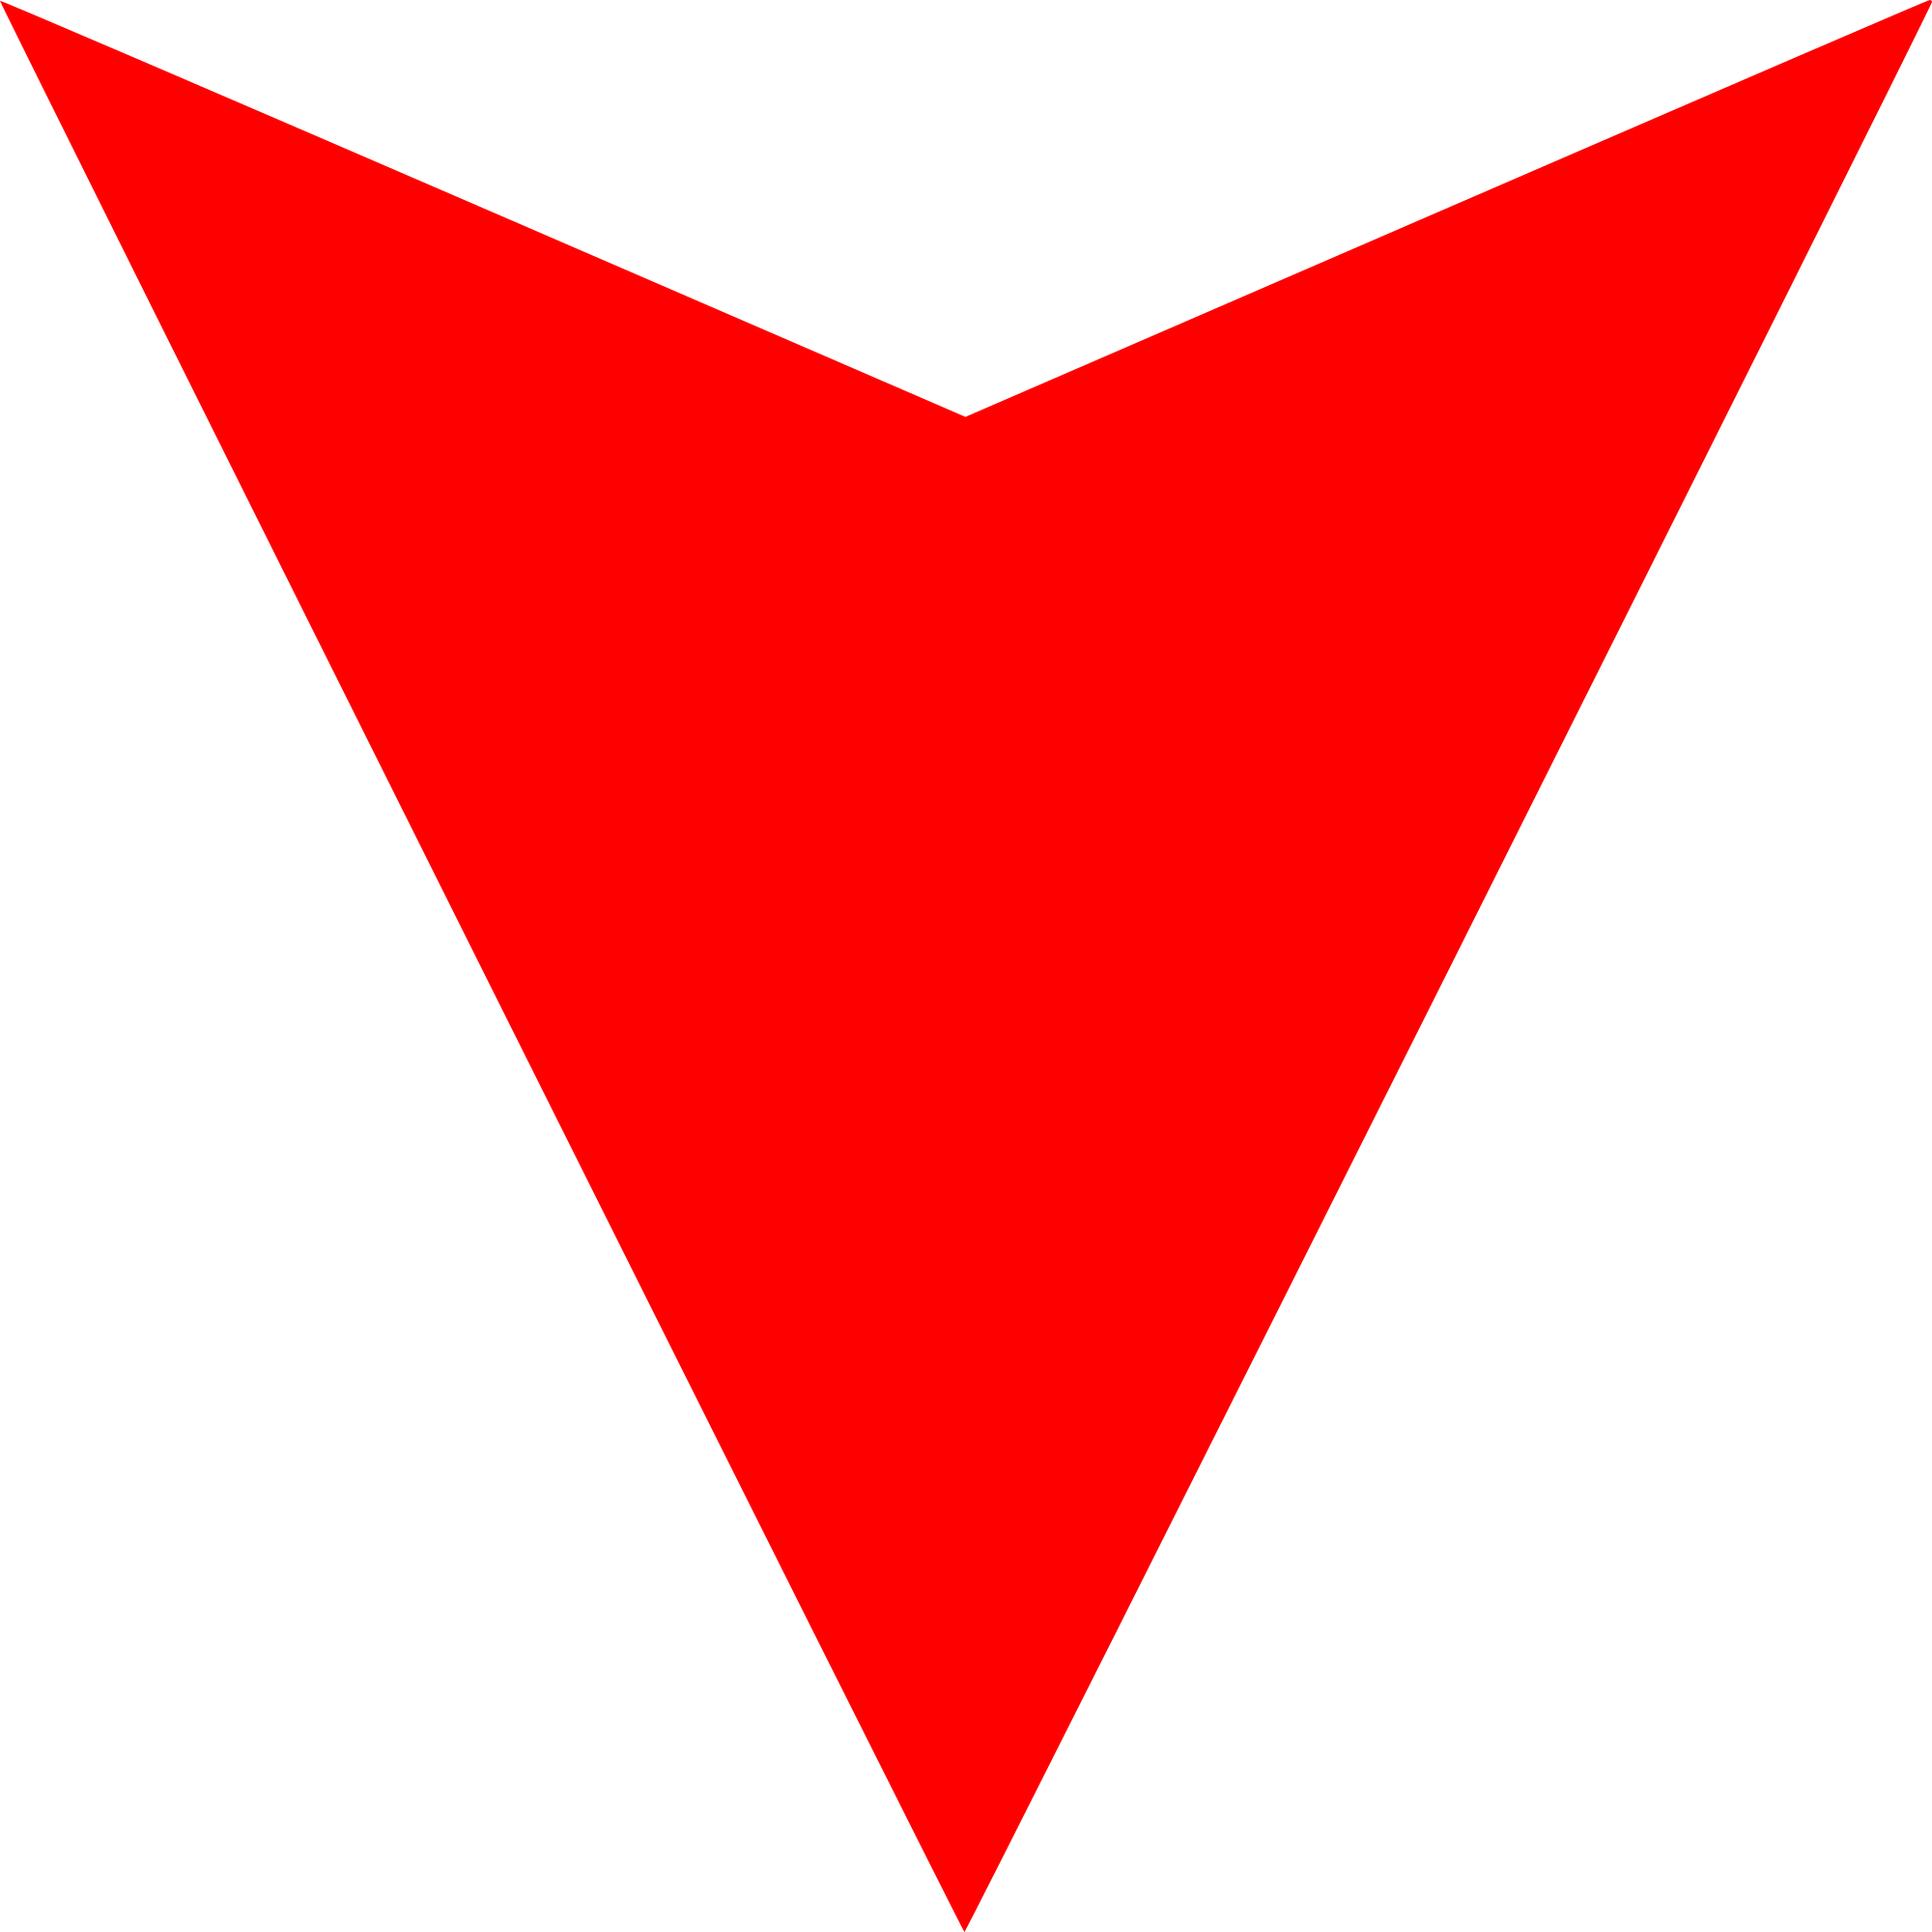 Red Downward Arrow - ClipArt Best